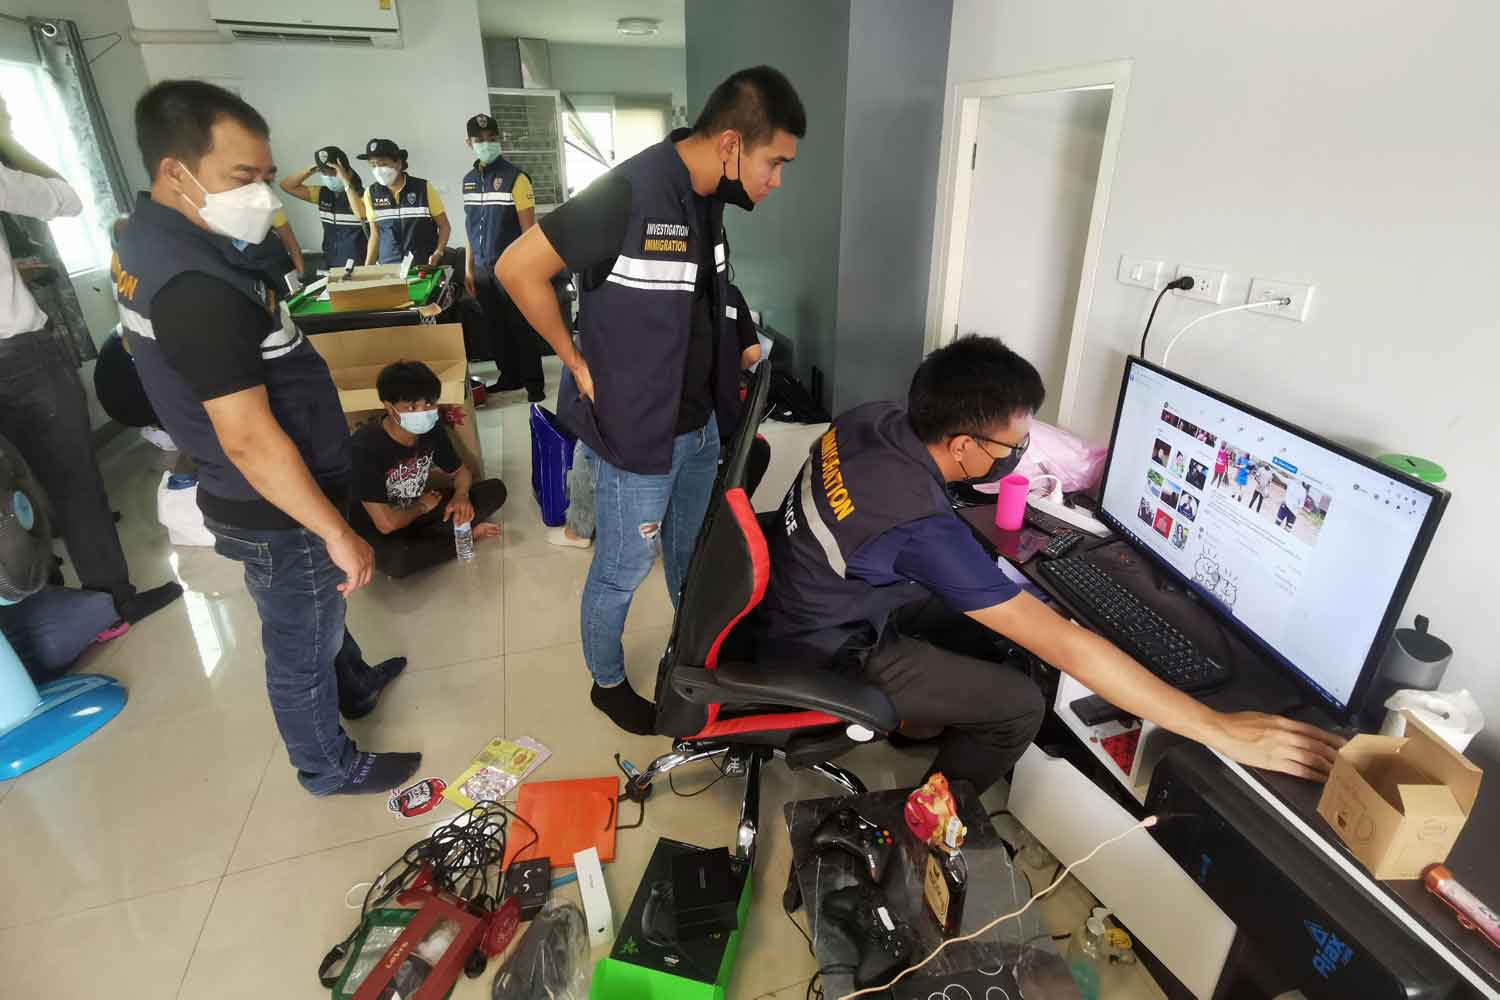 Football gambling 'hosts' busted in Mae Sot